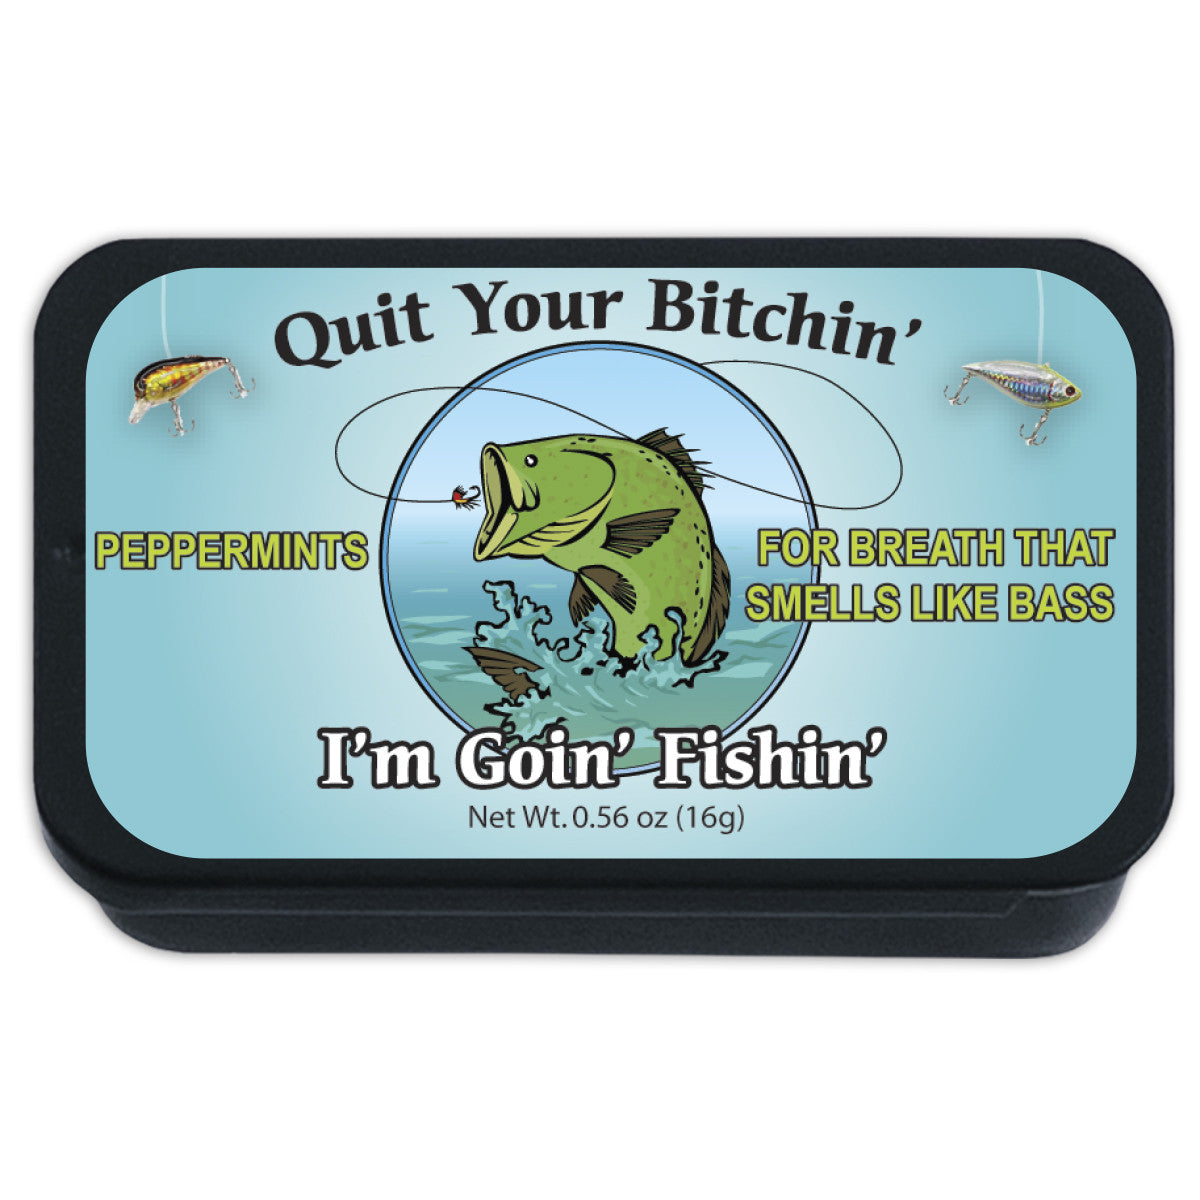 Quit Your Bitchin' - 1168S